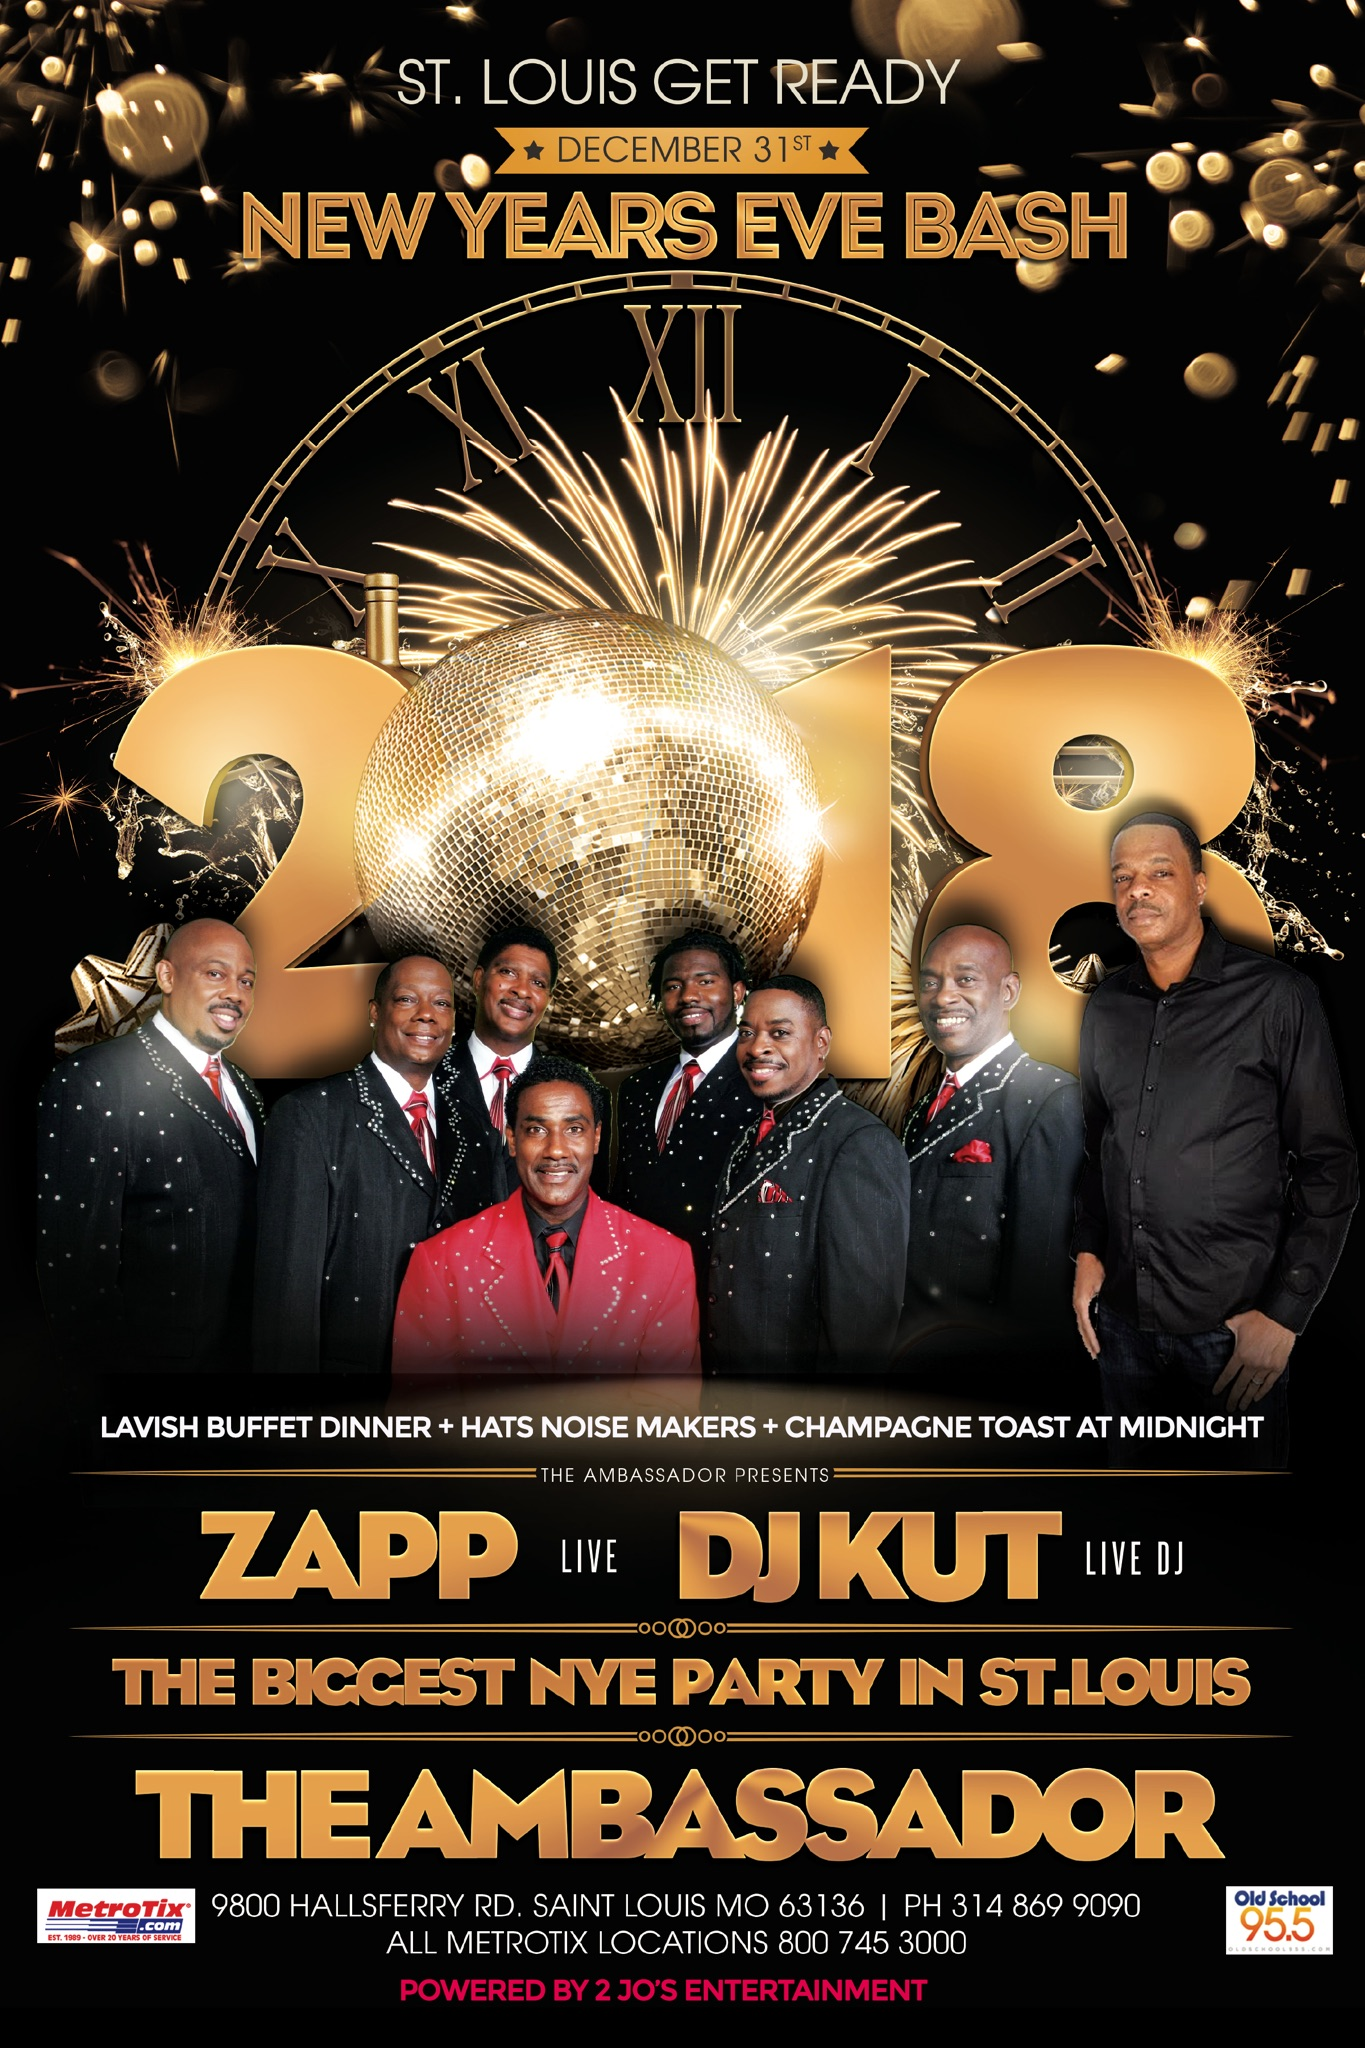 Zapp and DJ Kut